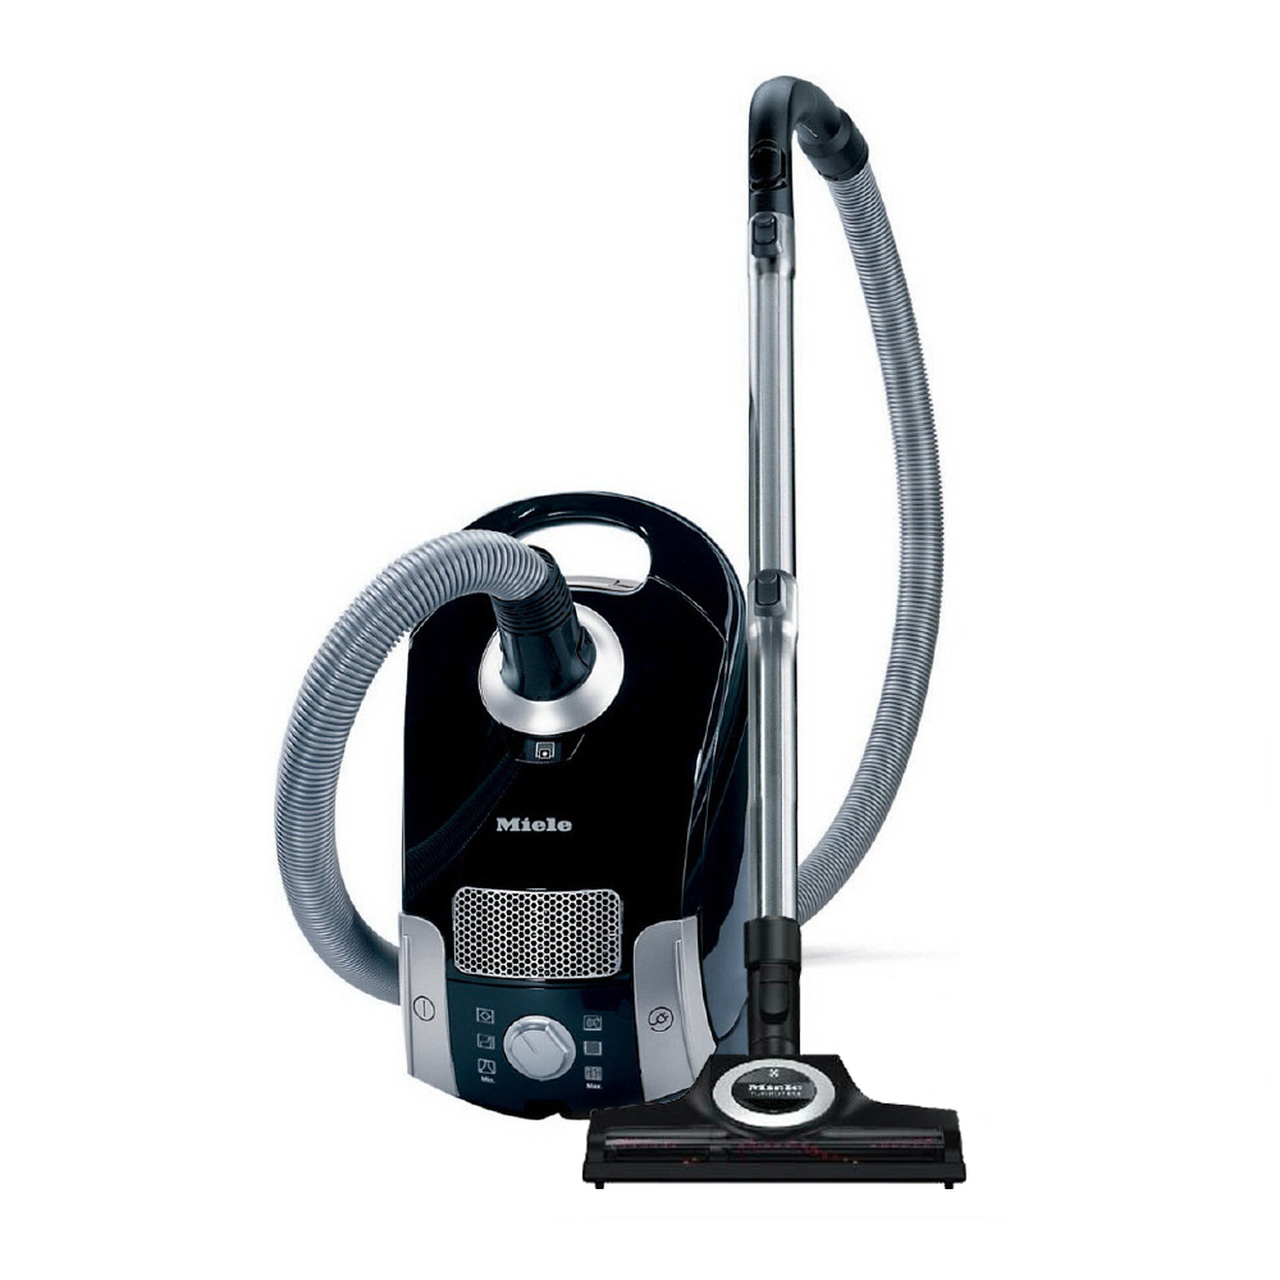 miele-compact-c1-limited-edition-with-turbo-brush-for-low-to-medium-pile-carpet-t41cae005cdn15-88770.1528066960.jpg